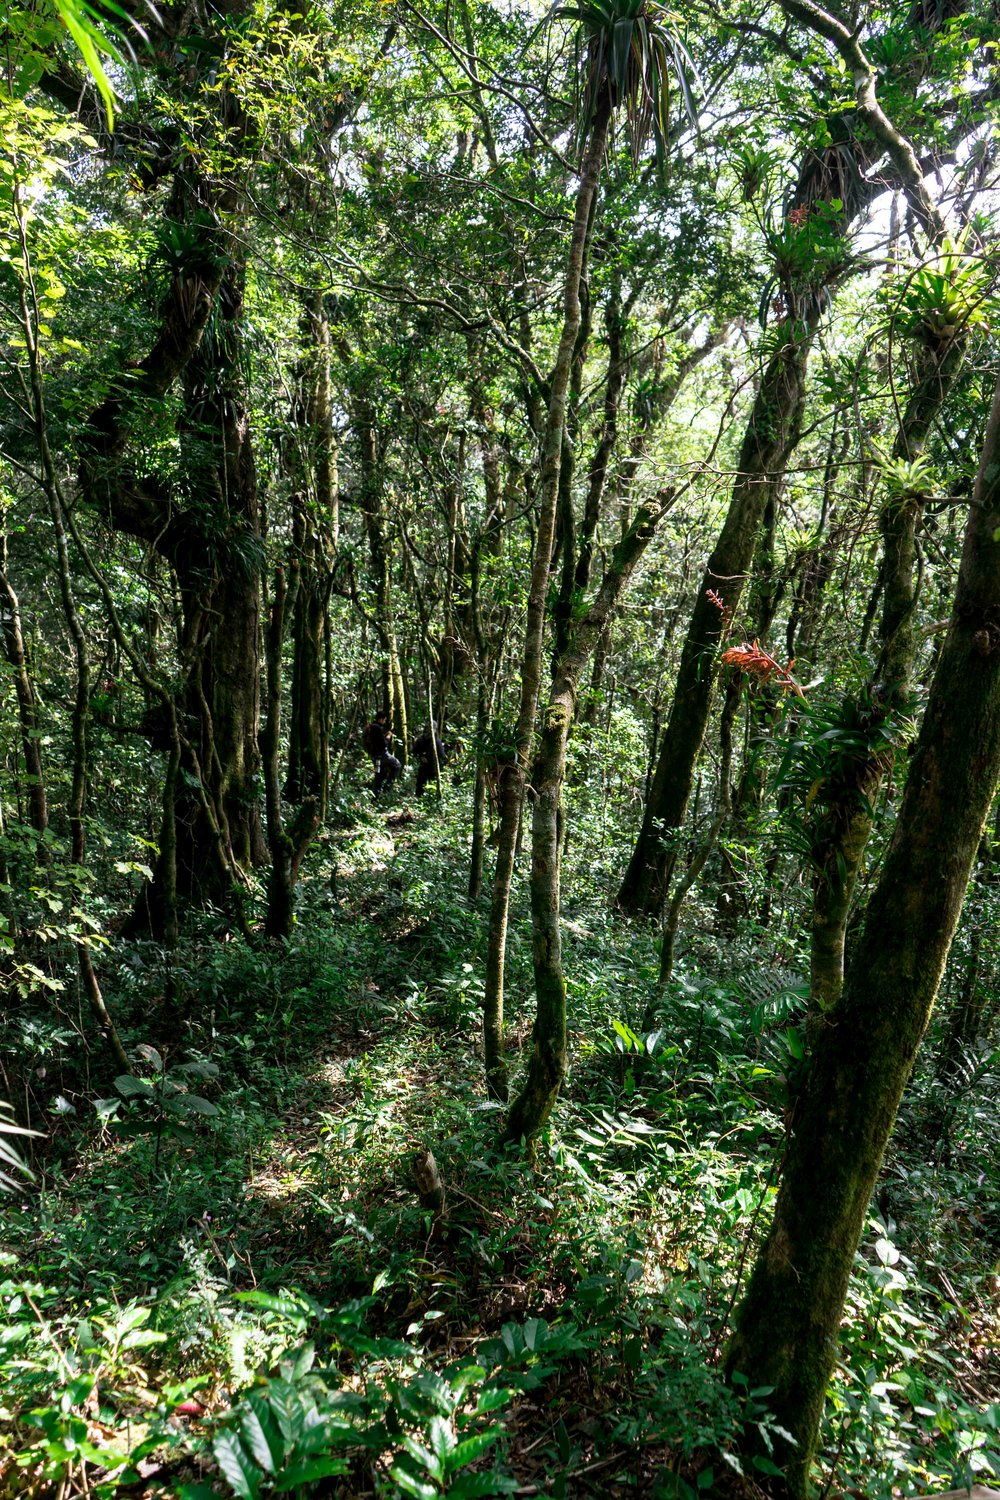 Chiapas cloud forest with Pro Natura